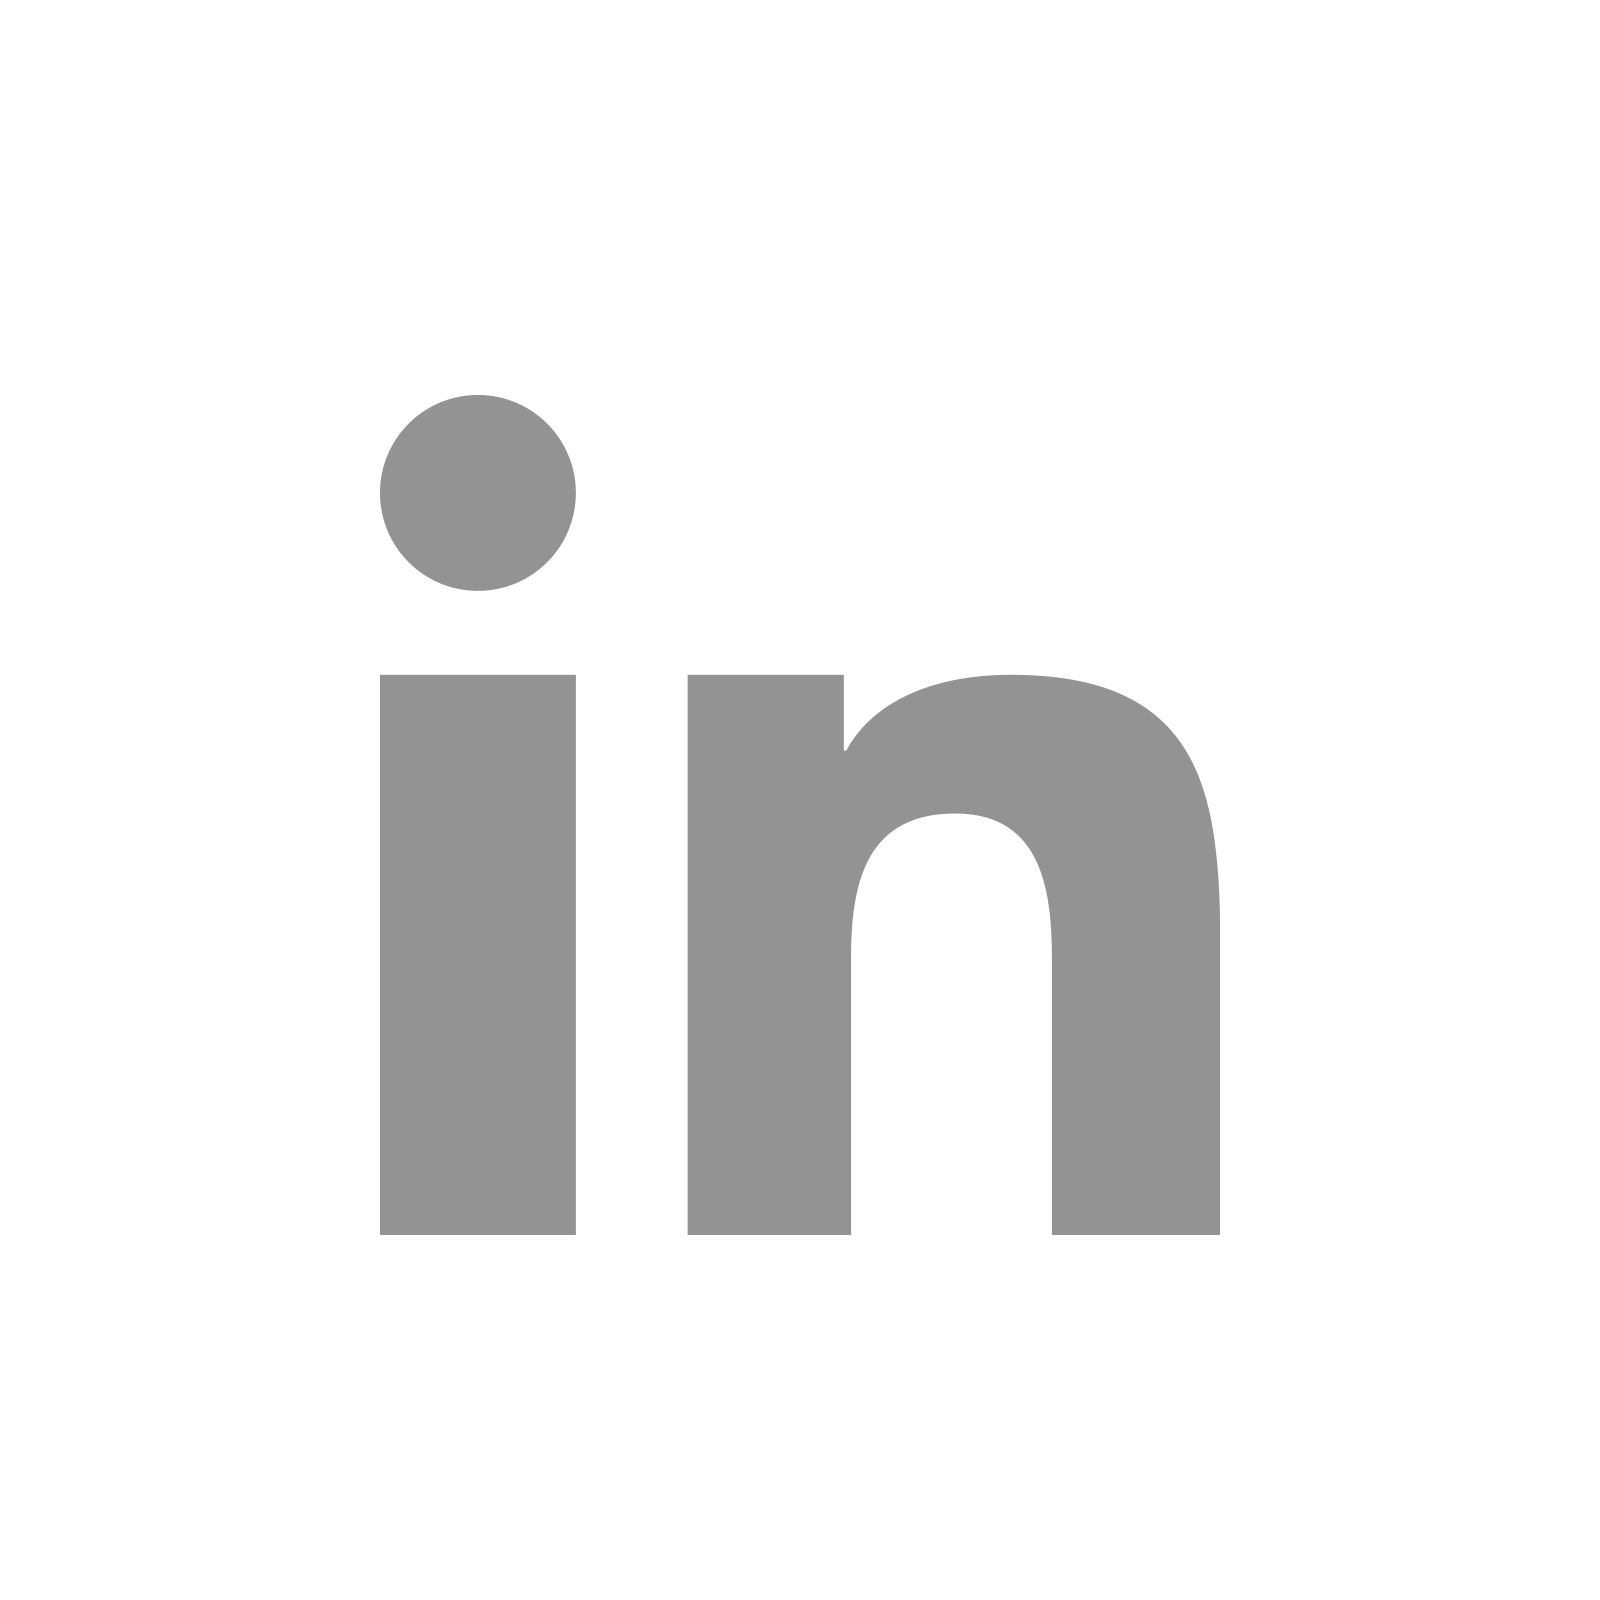 Linkedin Matteo Botto